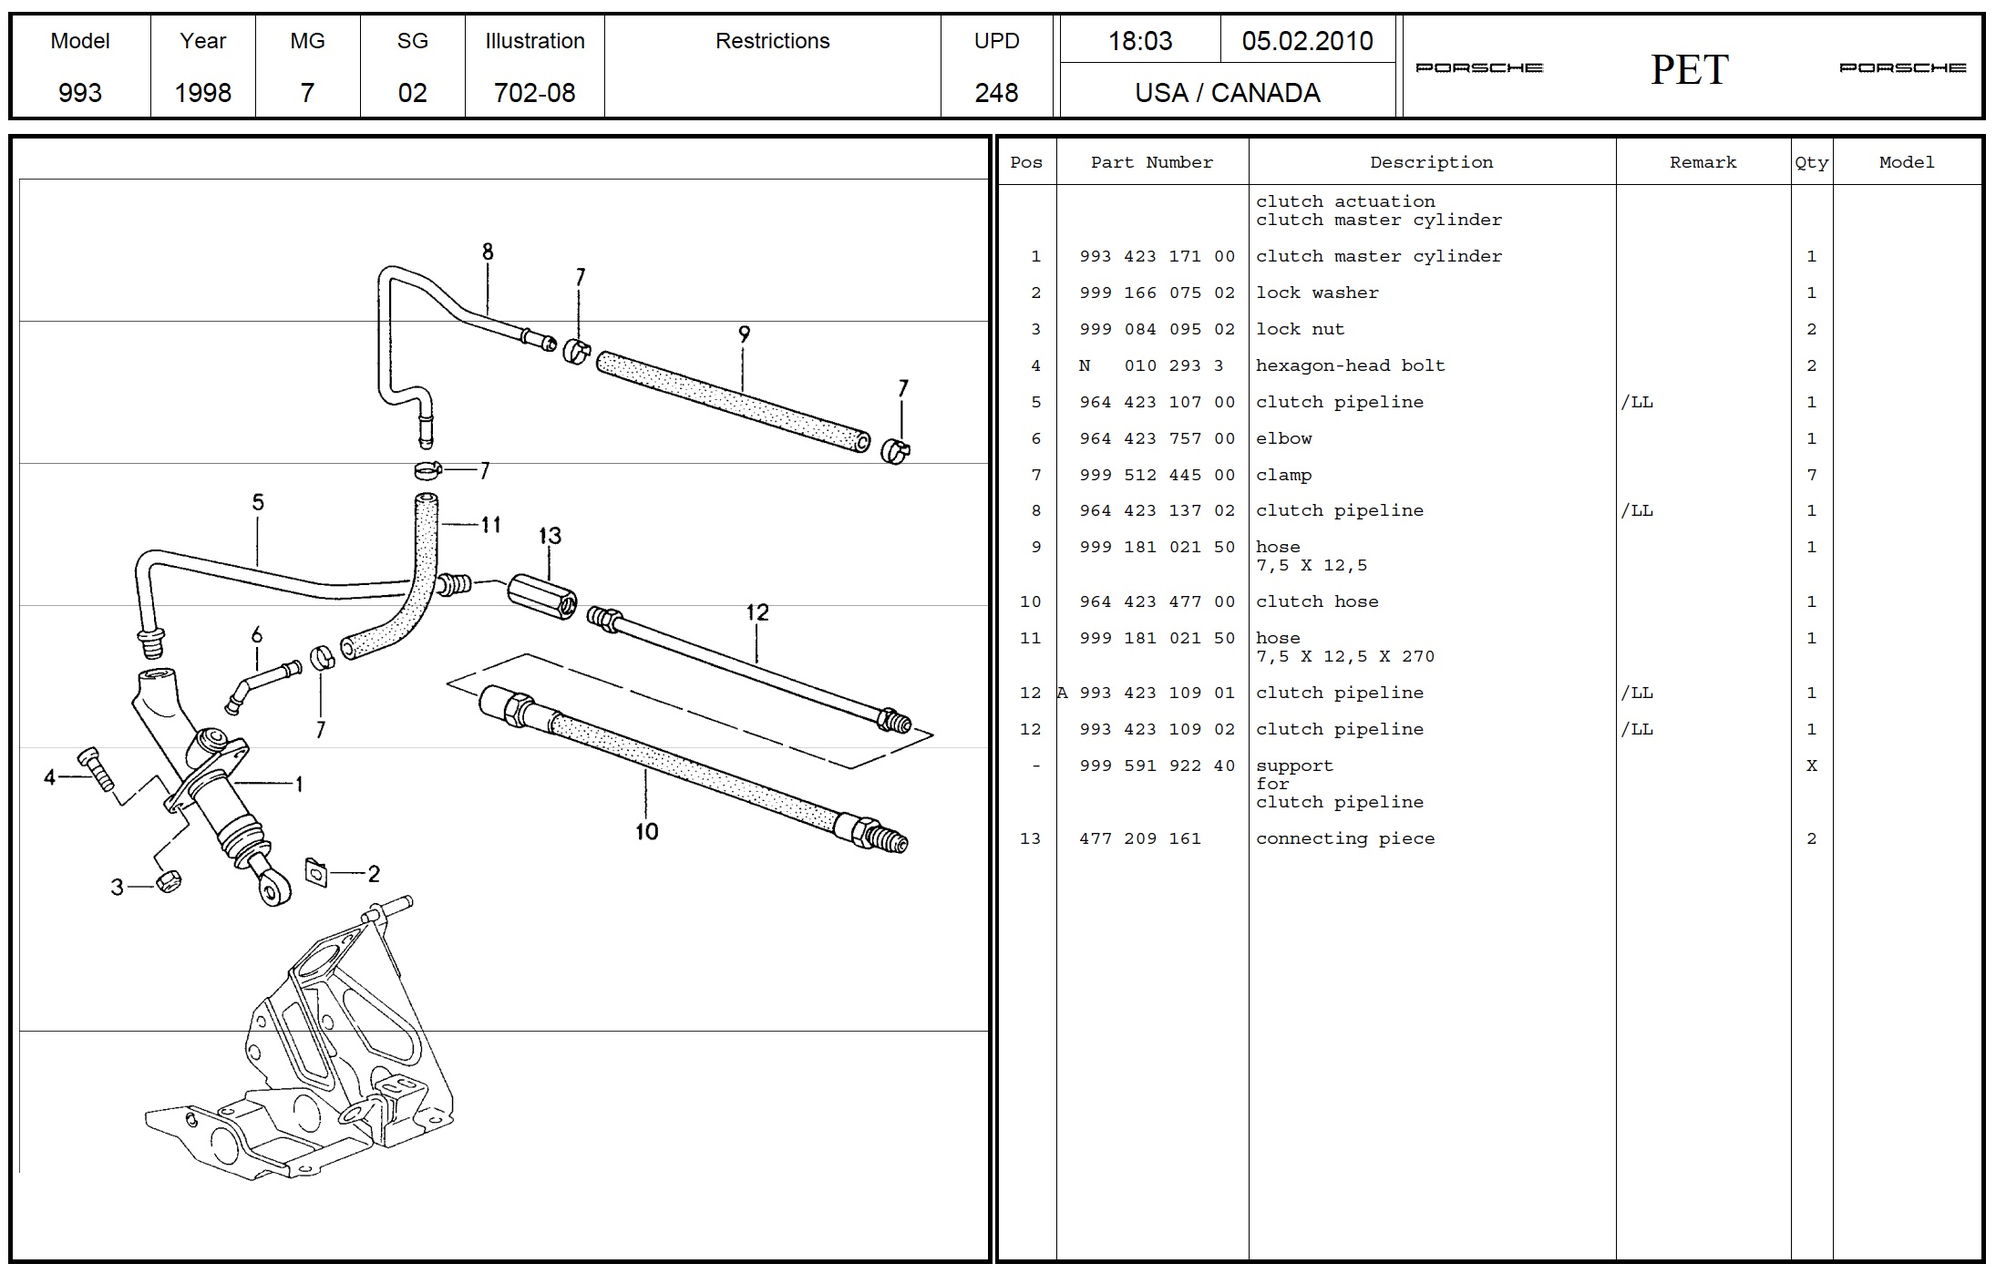 hight resolution of wiring diagram awesome sle detail porsche 993 explore schematic fine awesome sample detail porsche 993 wiring